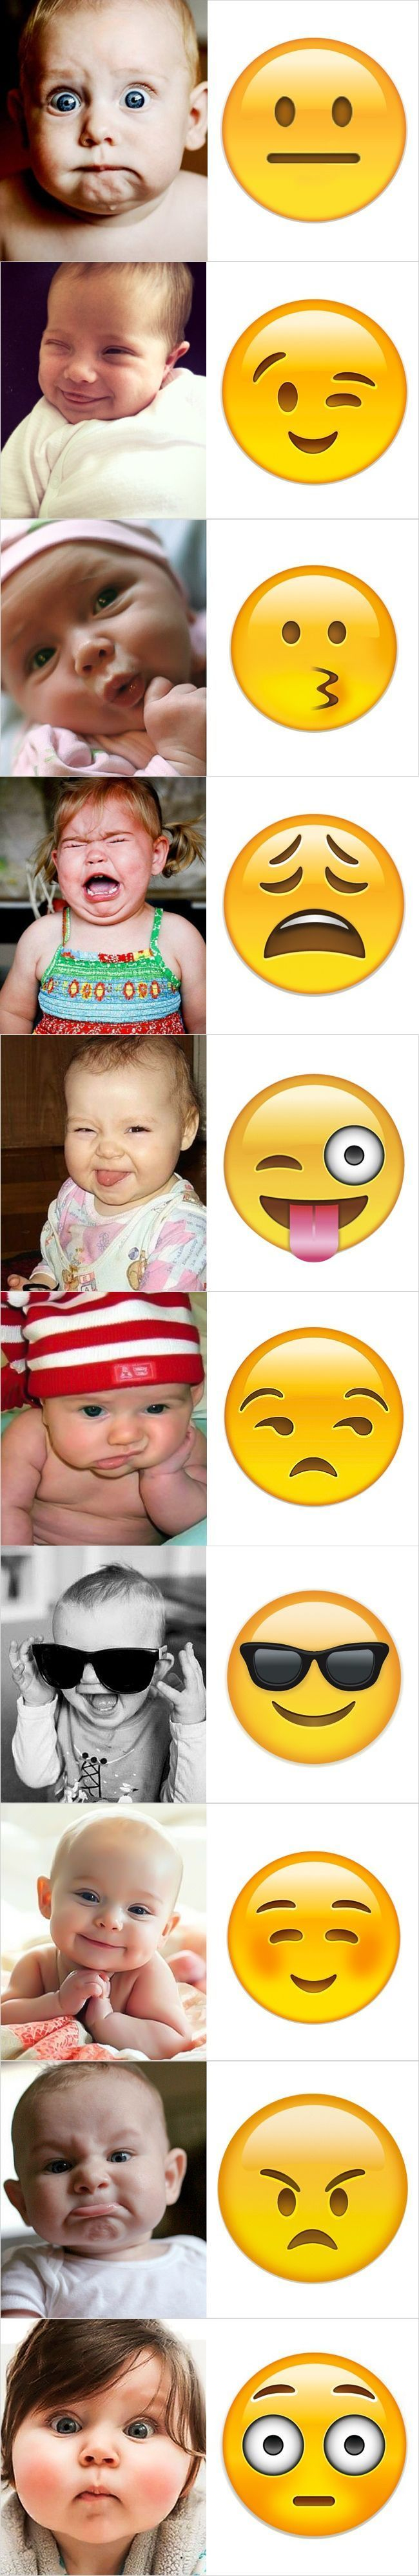 We all add emojis at the end of our texts in order to make them more lively and showing our facial expressions through messages. However, different emojis can add different emotions to your text and if you use them wrongly, the recipients might get the wrong message and lead you to a big trouble my friend.